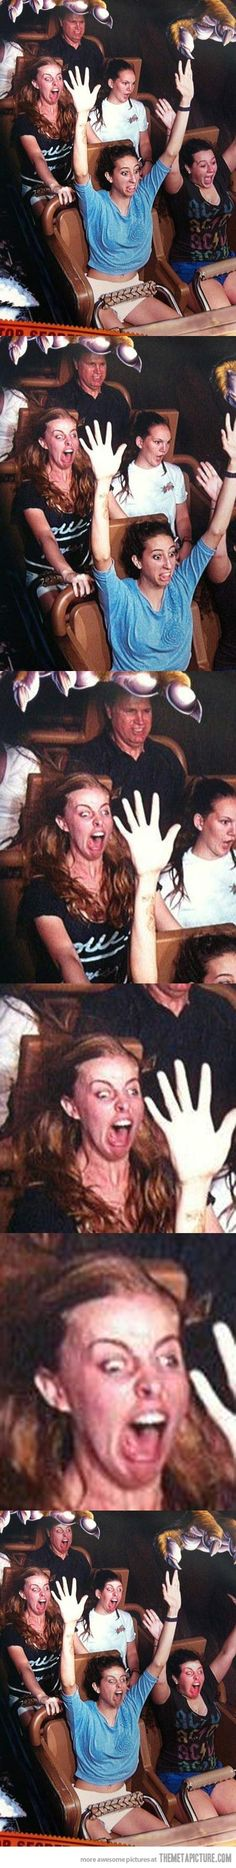 roller coasters...they're not for everyone. the longer you stare, the funnier it gets